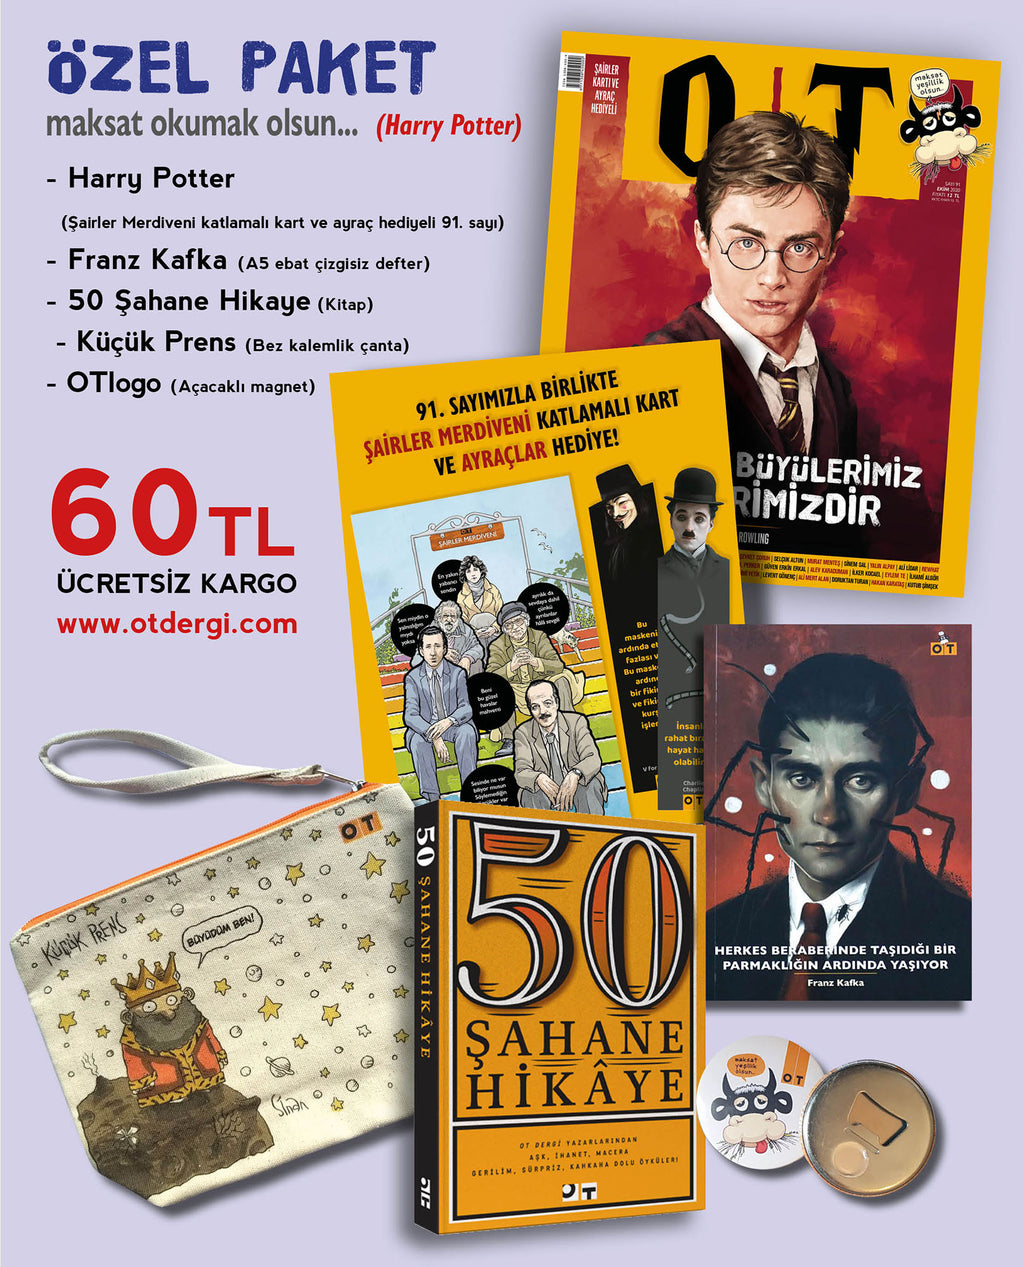 Harry Potter özel paket